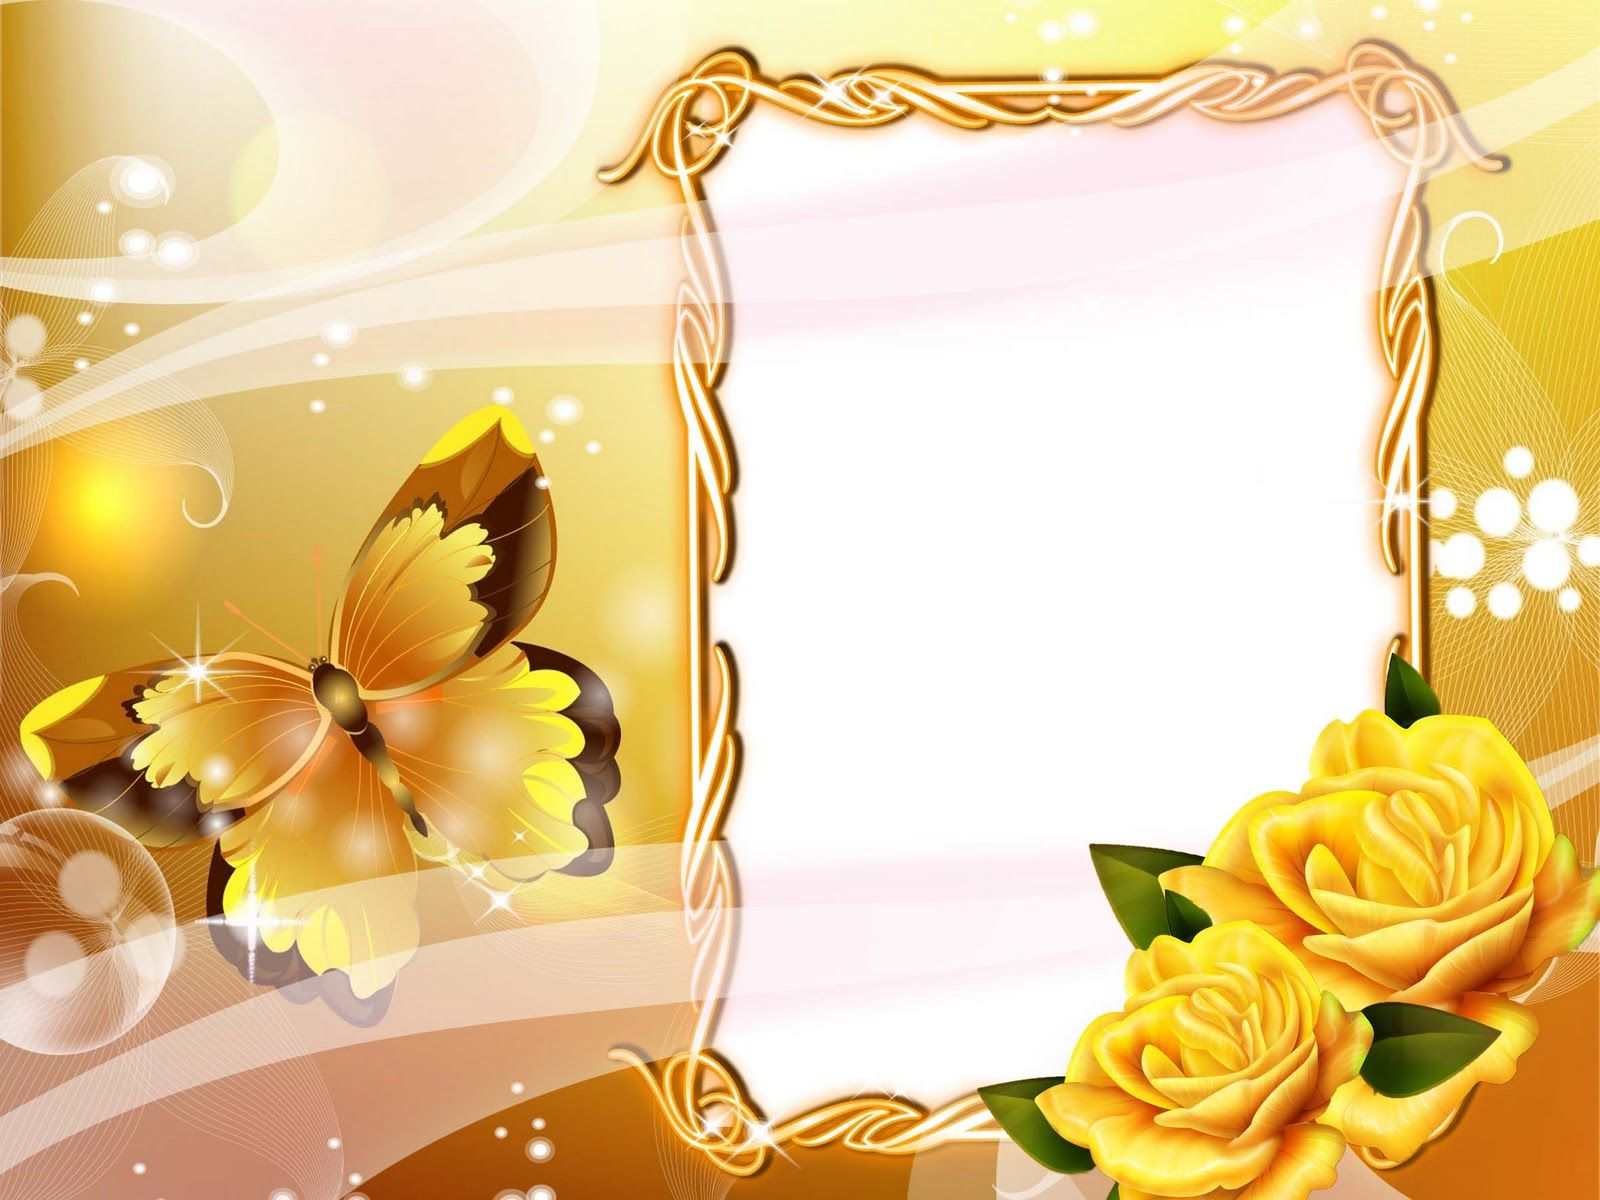 Download and share clipart about Frame Frames Death